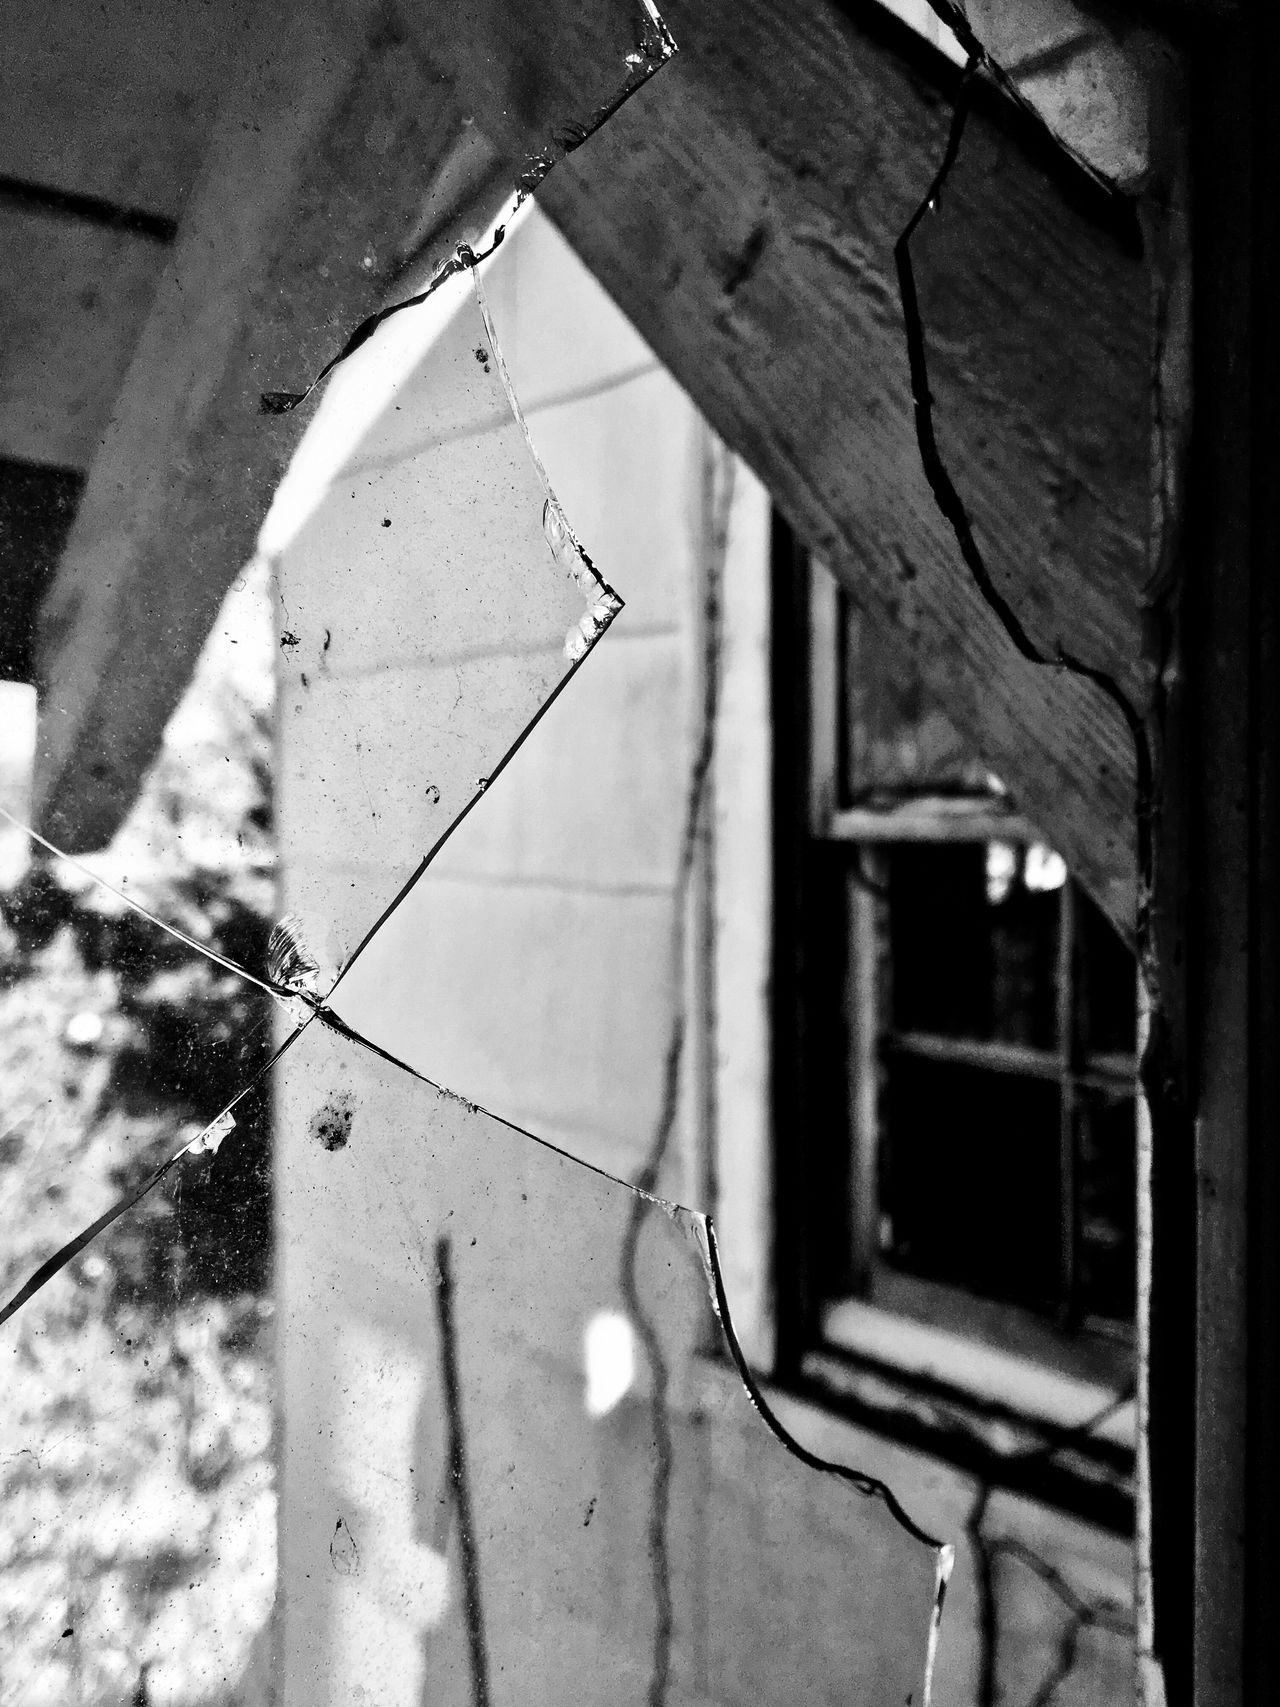 Built Structure No People Day Close-up Architecture Building Exterior Outdoors Nature Change Abandoned Abandoned Places Abandoned Buildings Architecture Hanging Broken Broken Glass